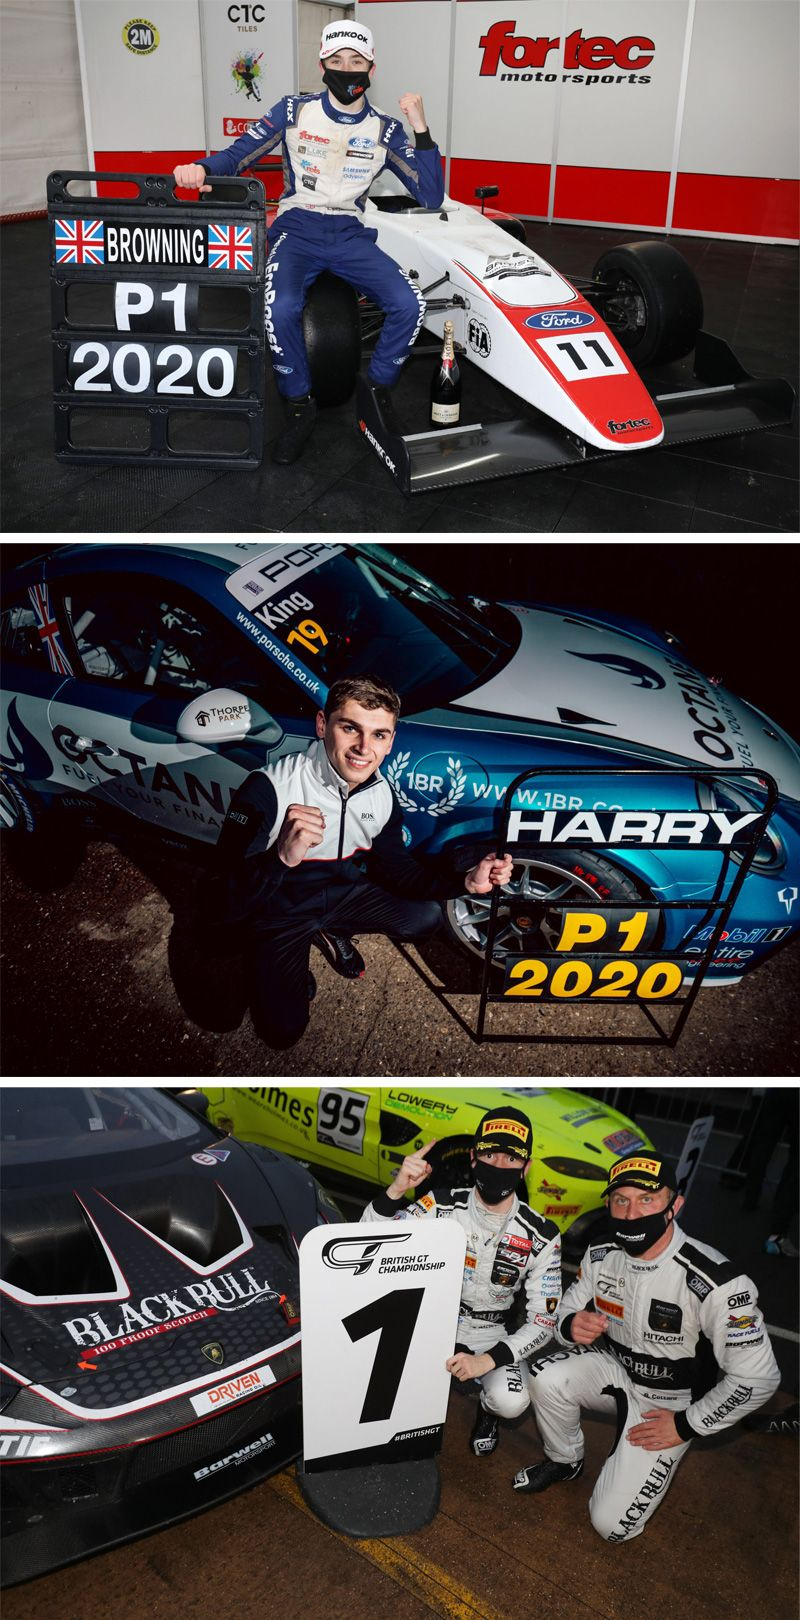 Pictured are Loughborough College Graduates - Luke Browning, Sandy Mitchell, Harry King standing next to their championship winning cars with a pit board sign marking number 1 in 2020